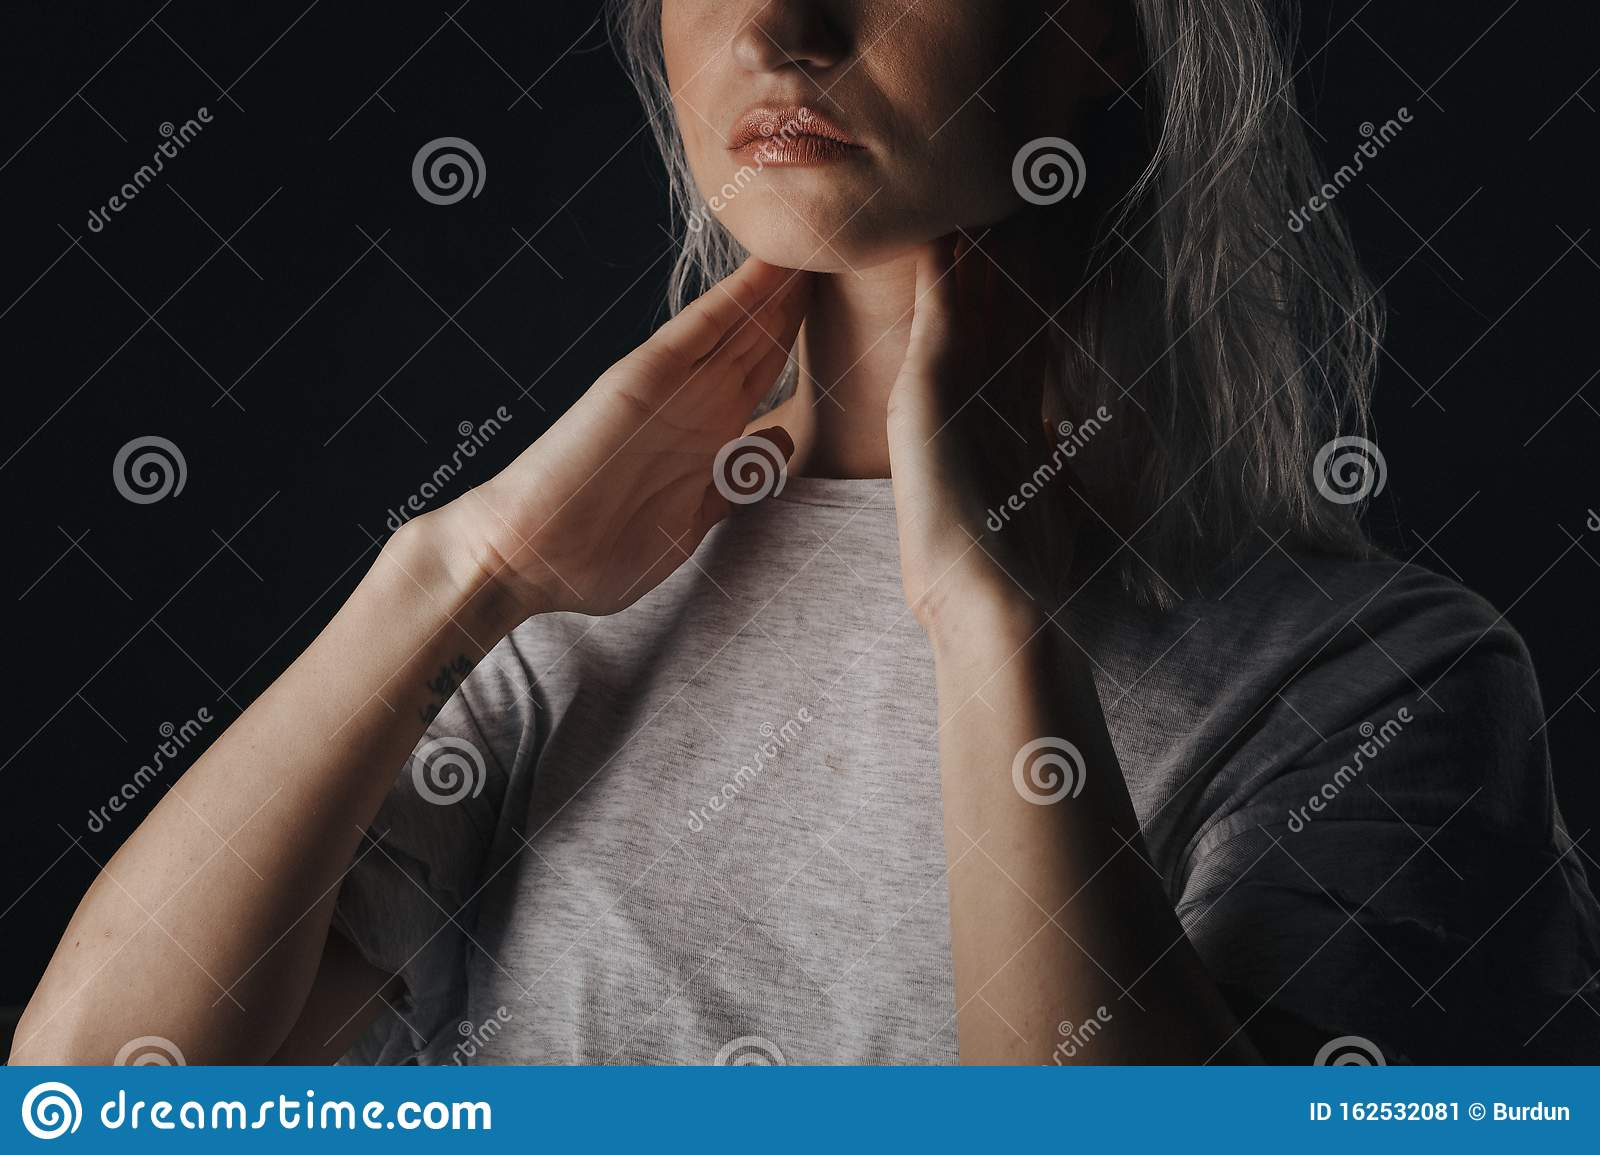 Female Checking Thyroid Gland By Herself Close Up Of Woman In